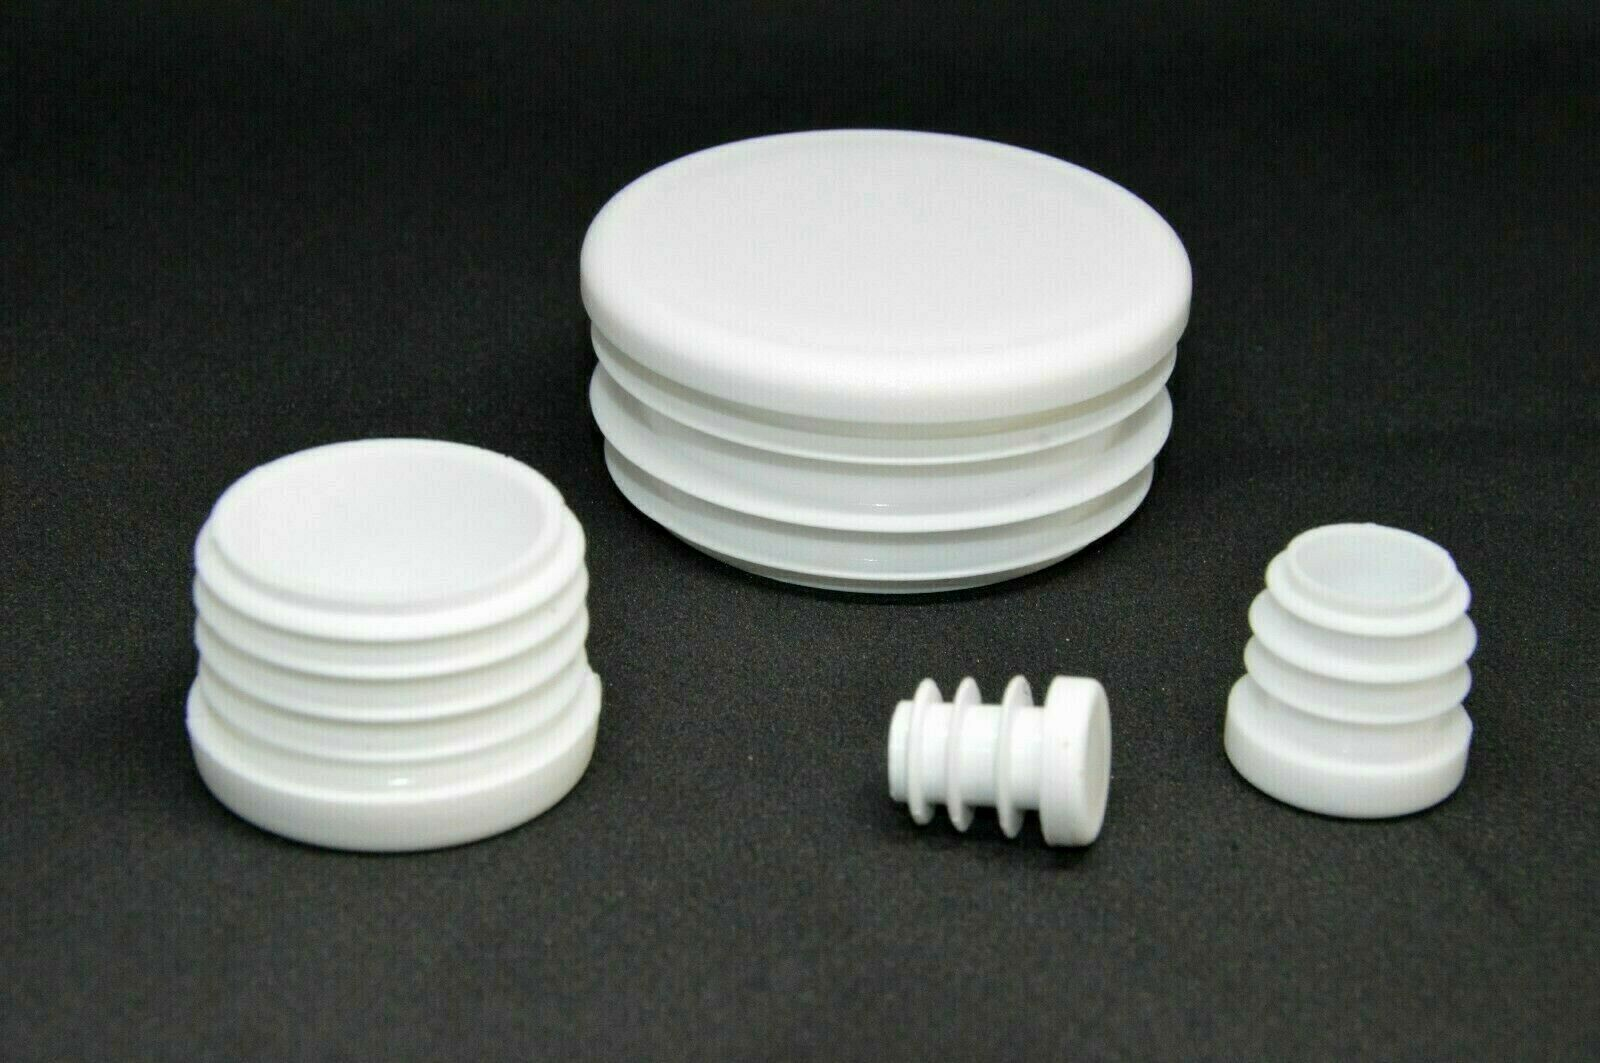 50mm Round Tube Insert Plug Pipe Blanking End Edge Caps Bungs Made in Germany